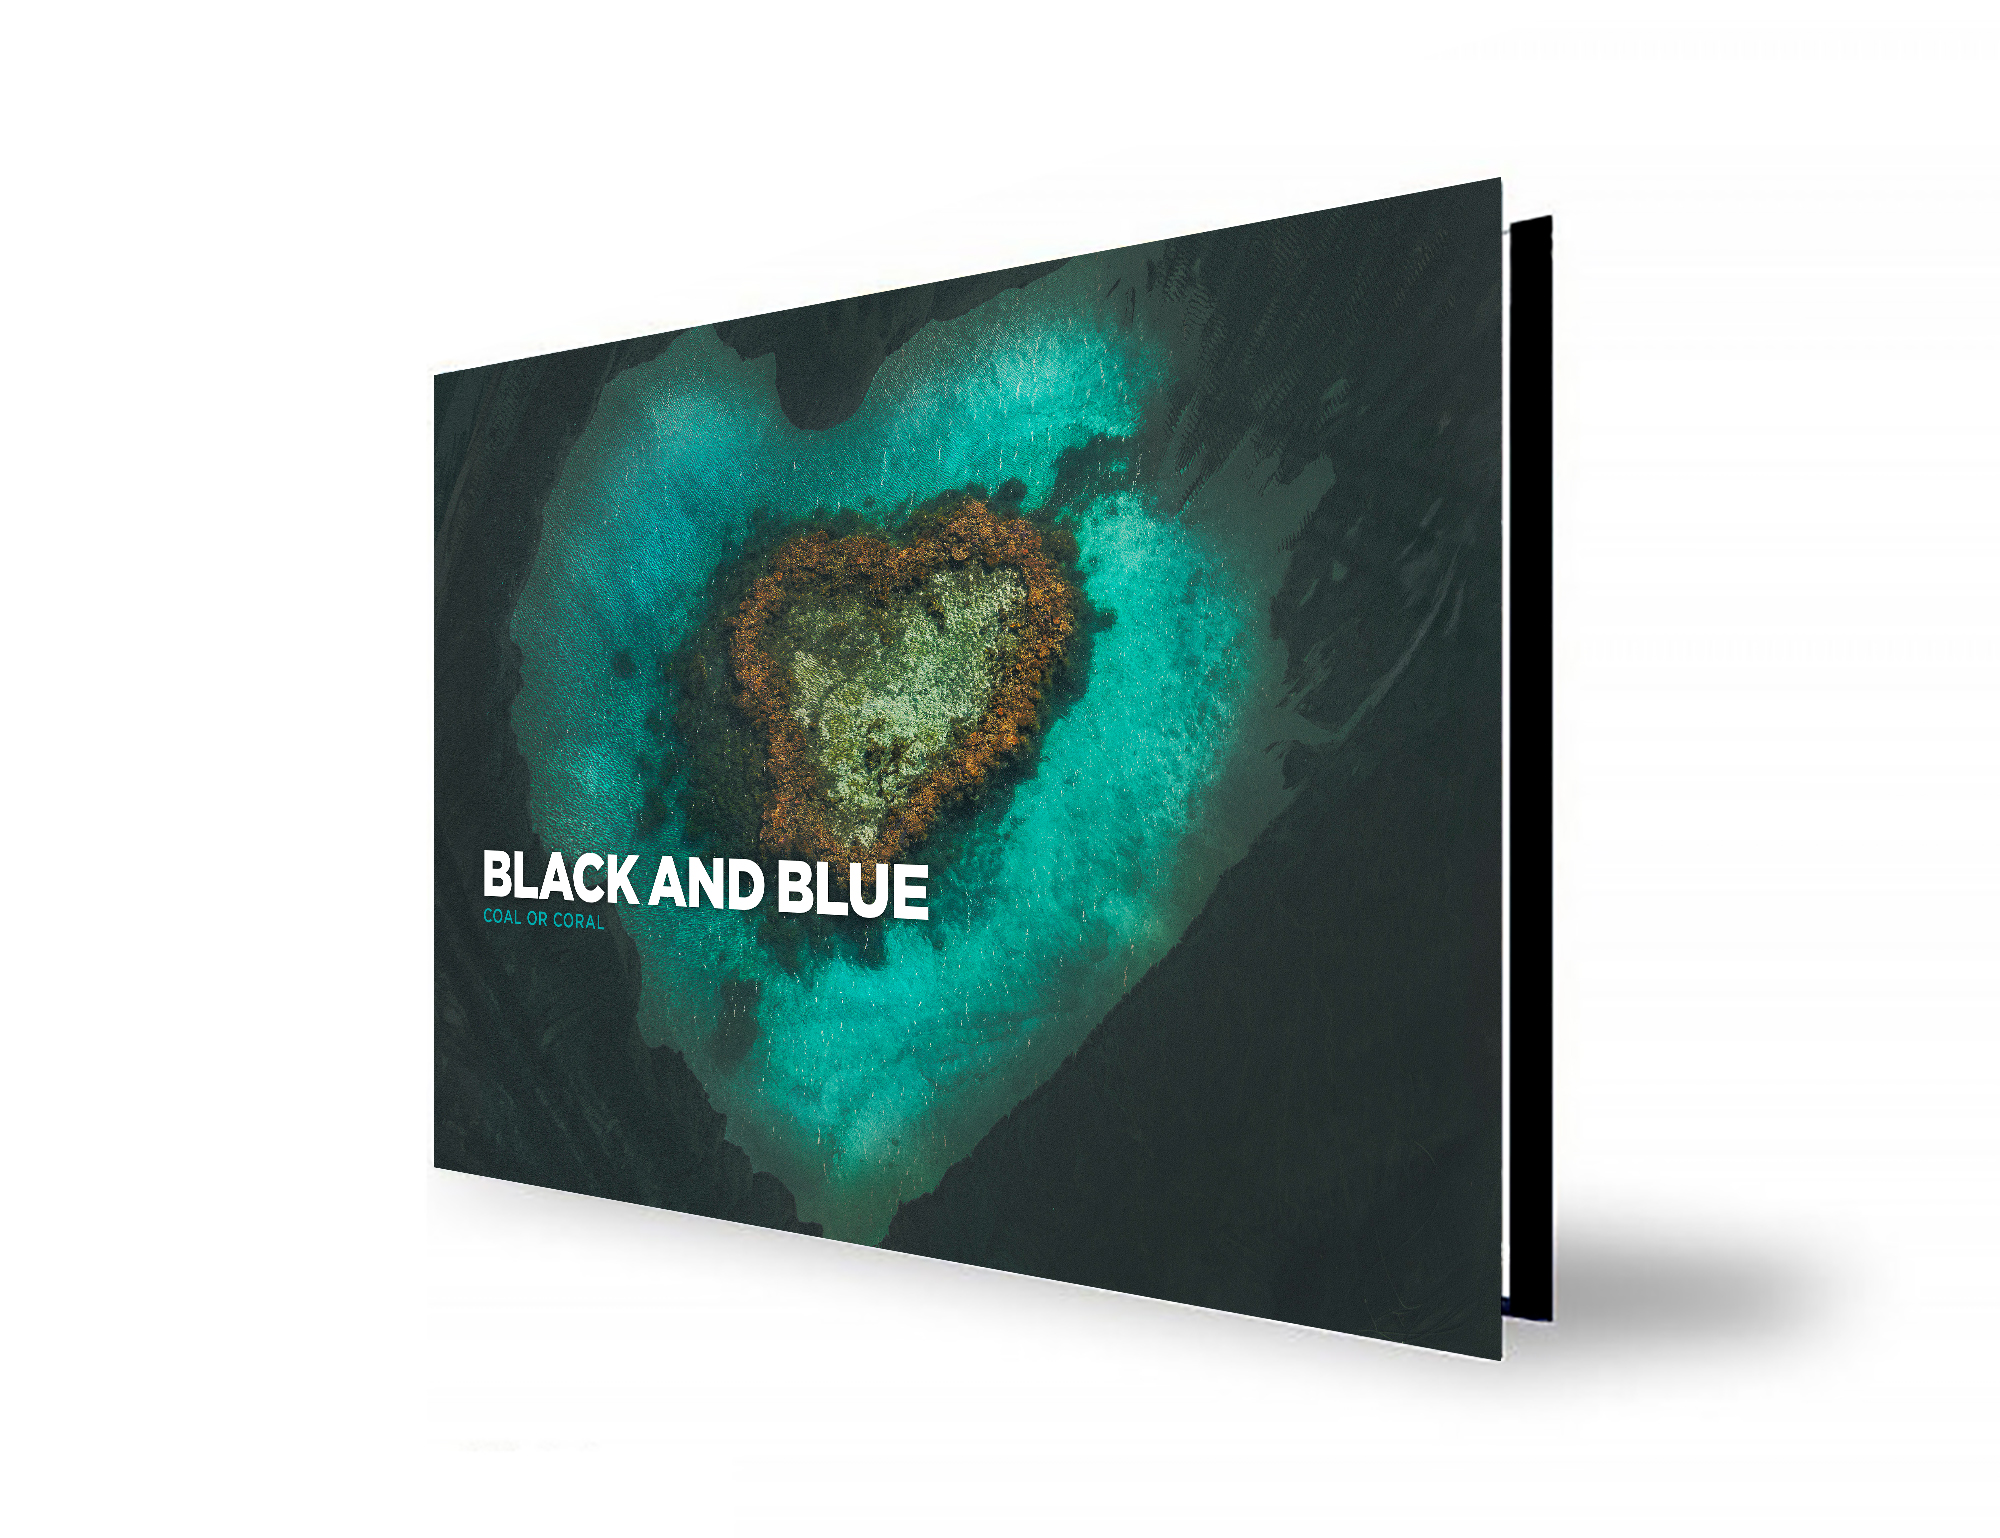 Fine Art Book - BLACK & BLUE is the second in a series of publications by The Light Collective showcasing fine art and conceptual imagery in this high quality limited run book illustrating the modern relationship between Coal and Coral.Unite in this cause to help save the reef!Shipping Date: Dec 2018